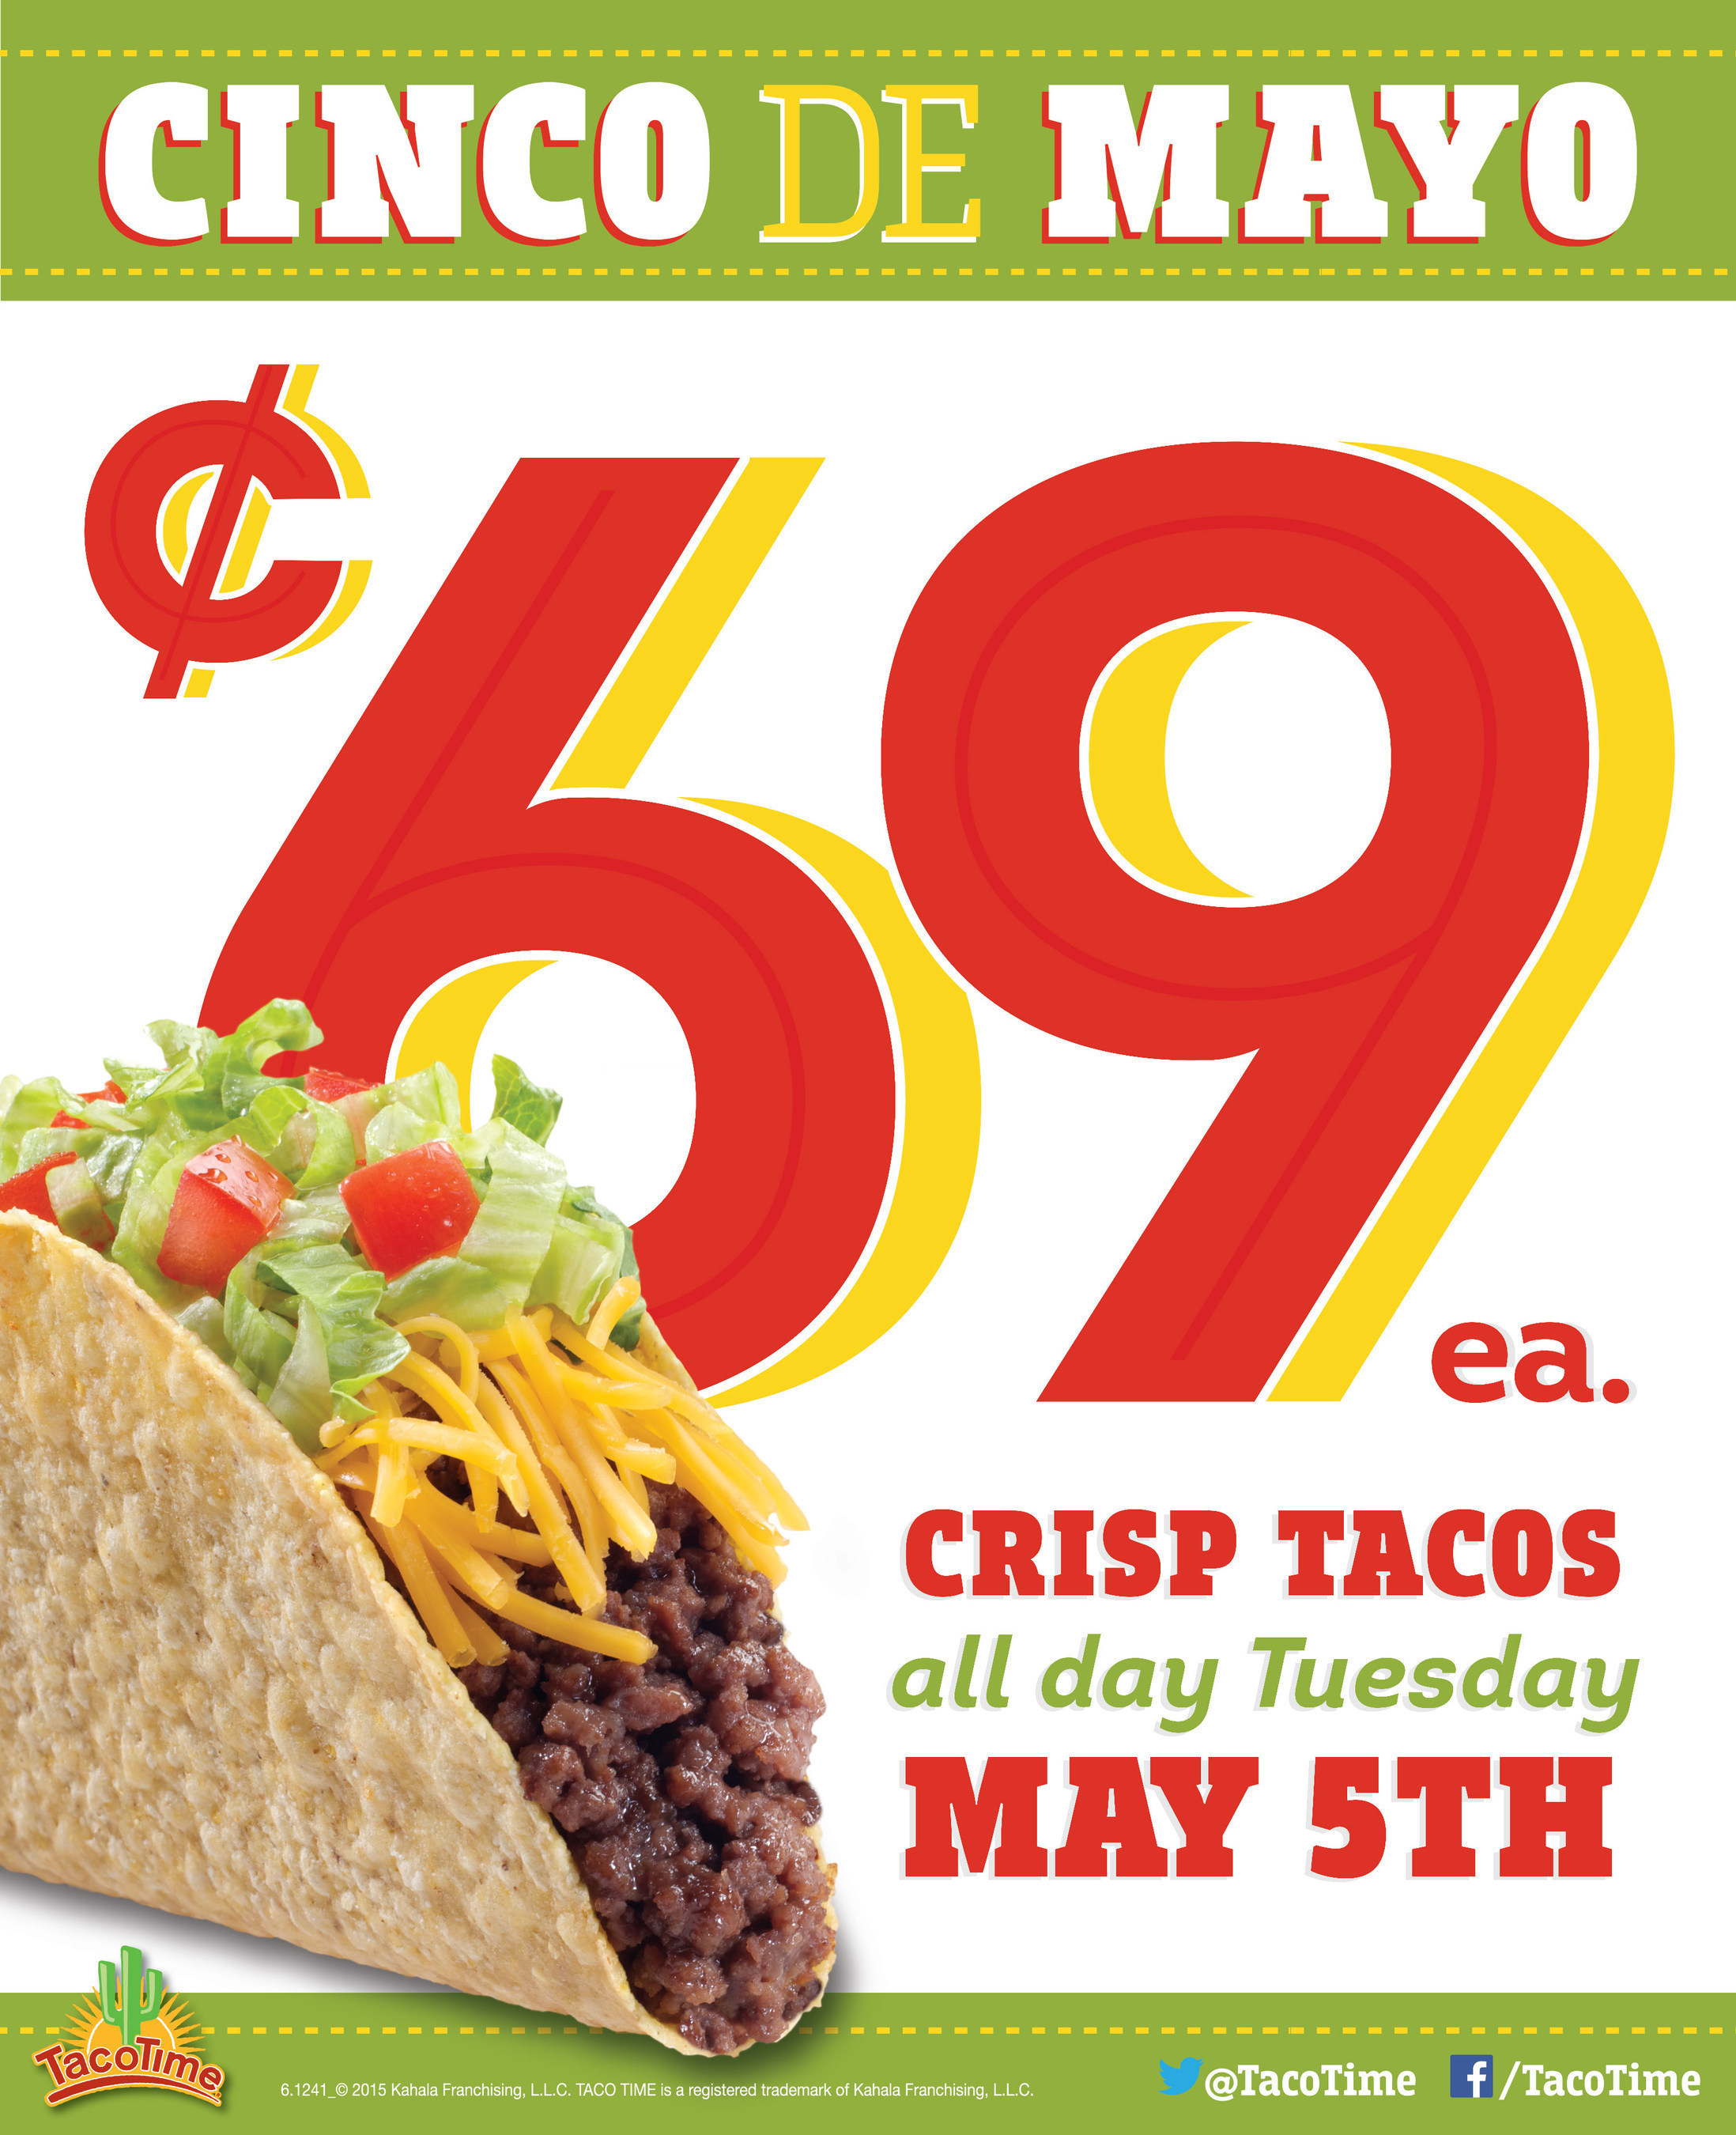 Celebrate Cinco de Mayo with TacoTime! Crisp Tacos are only $.69 all day May 5th.